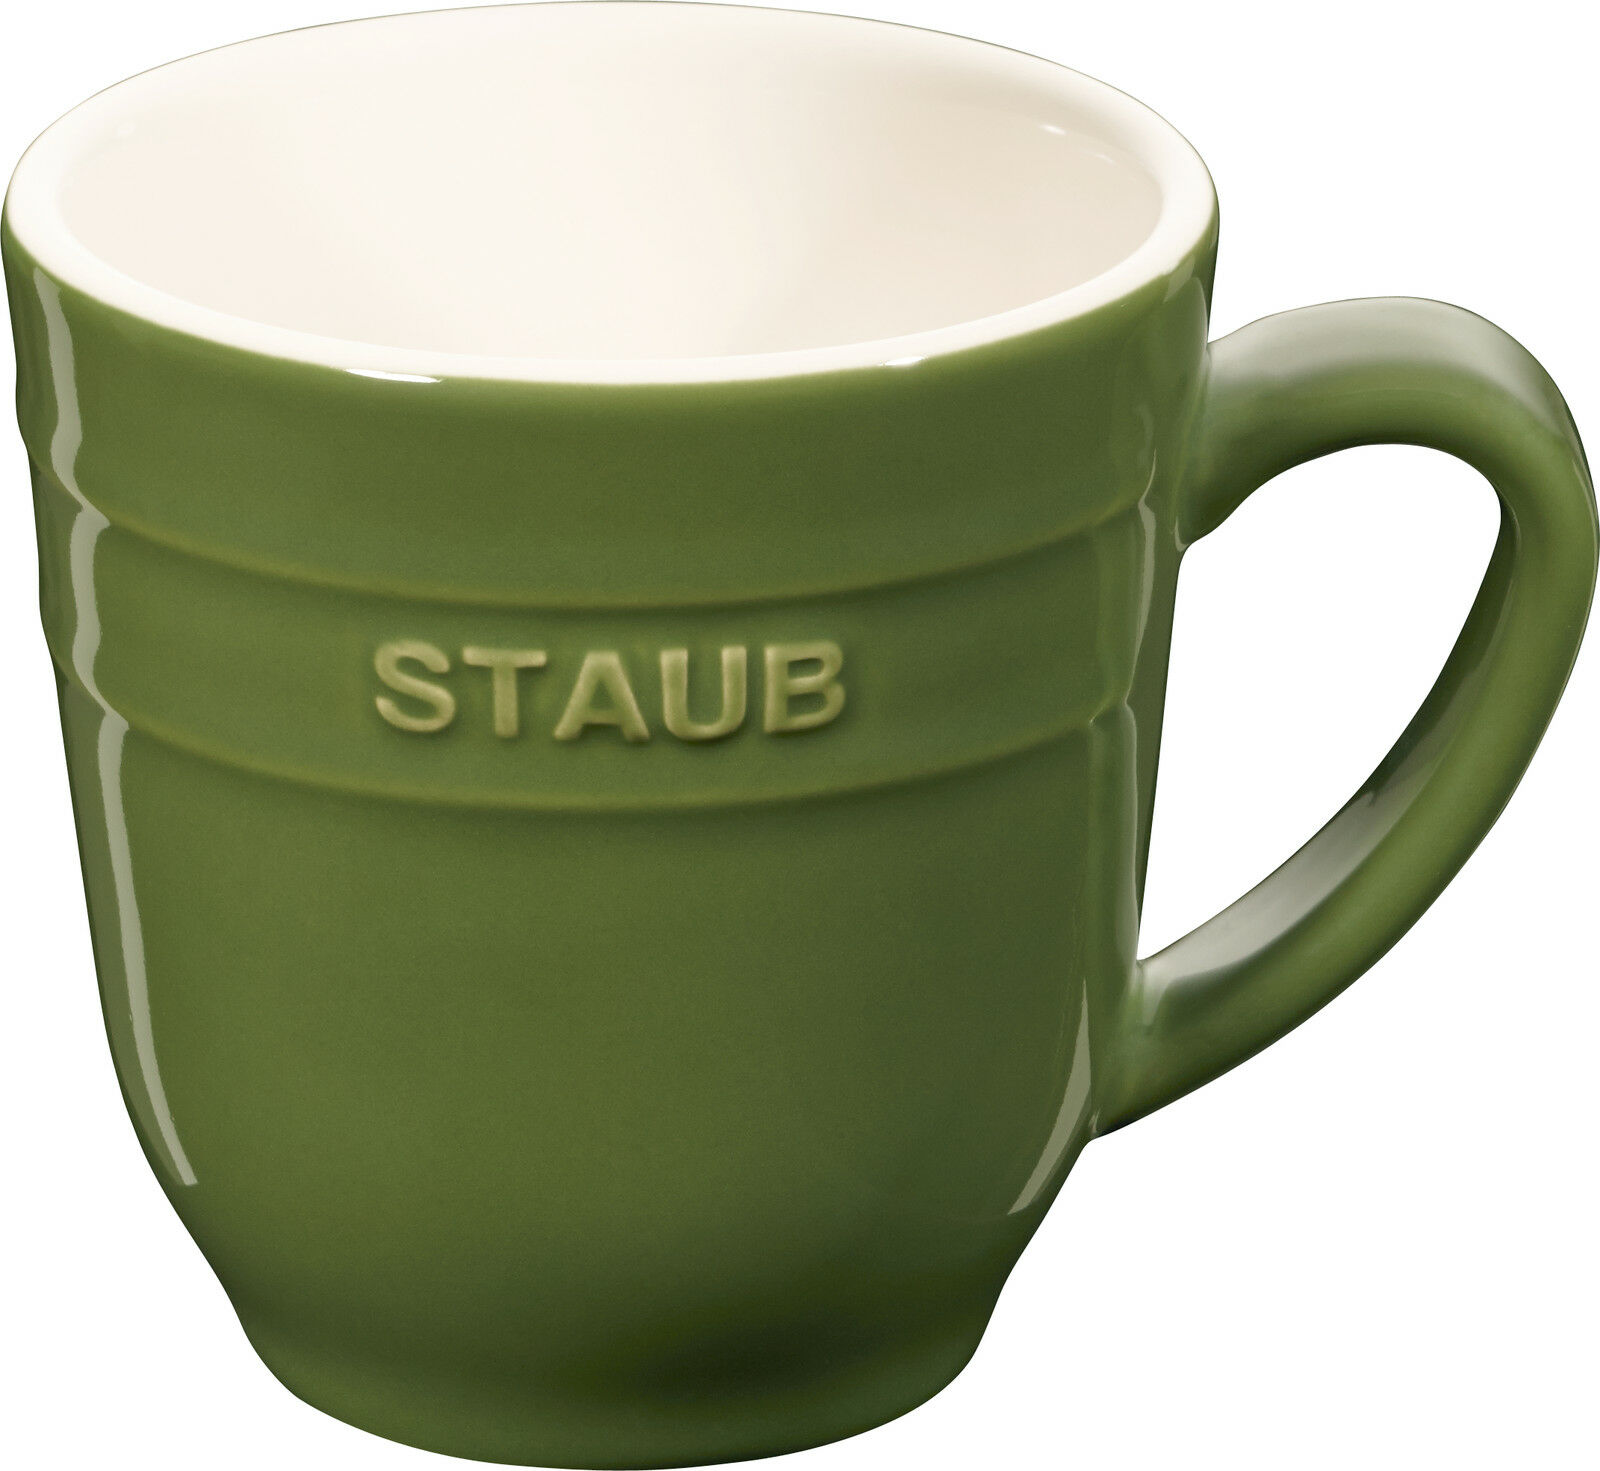 Set of 4 Staub Ceramic Cups Coffee Cups Coffee Cup Cup round Basil Green 0